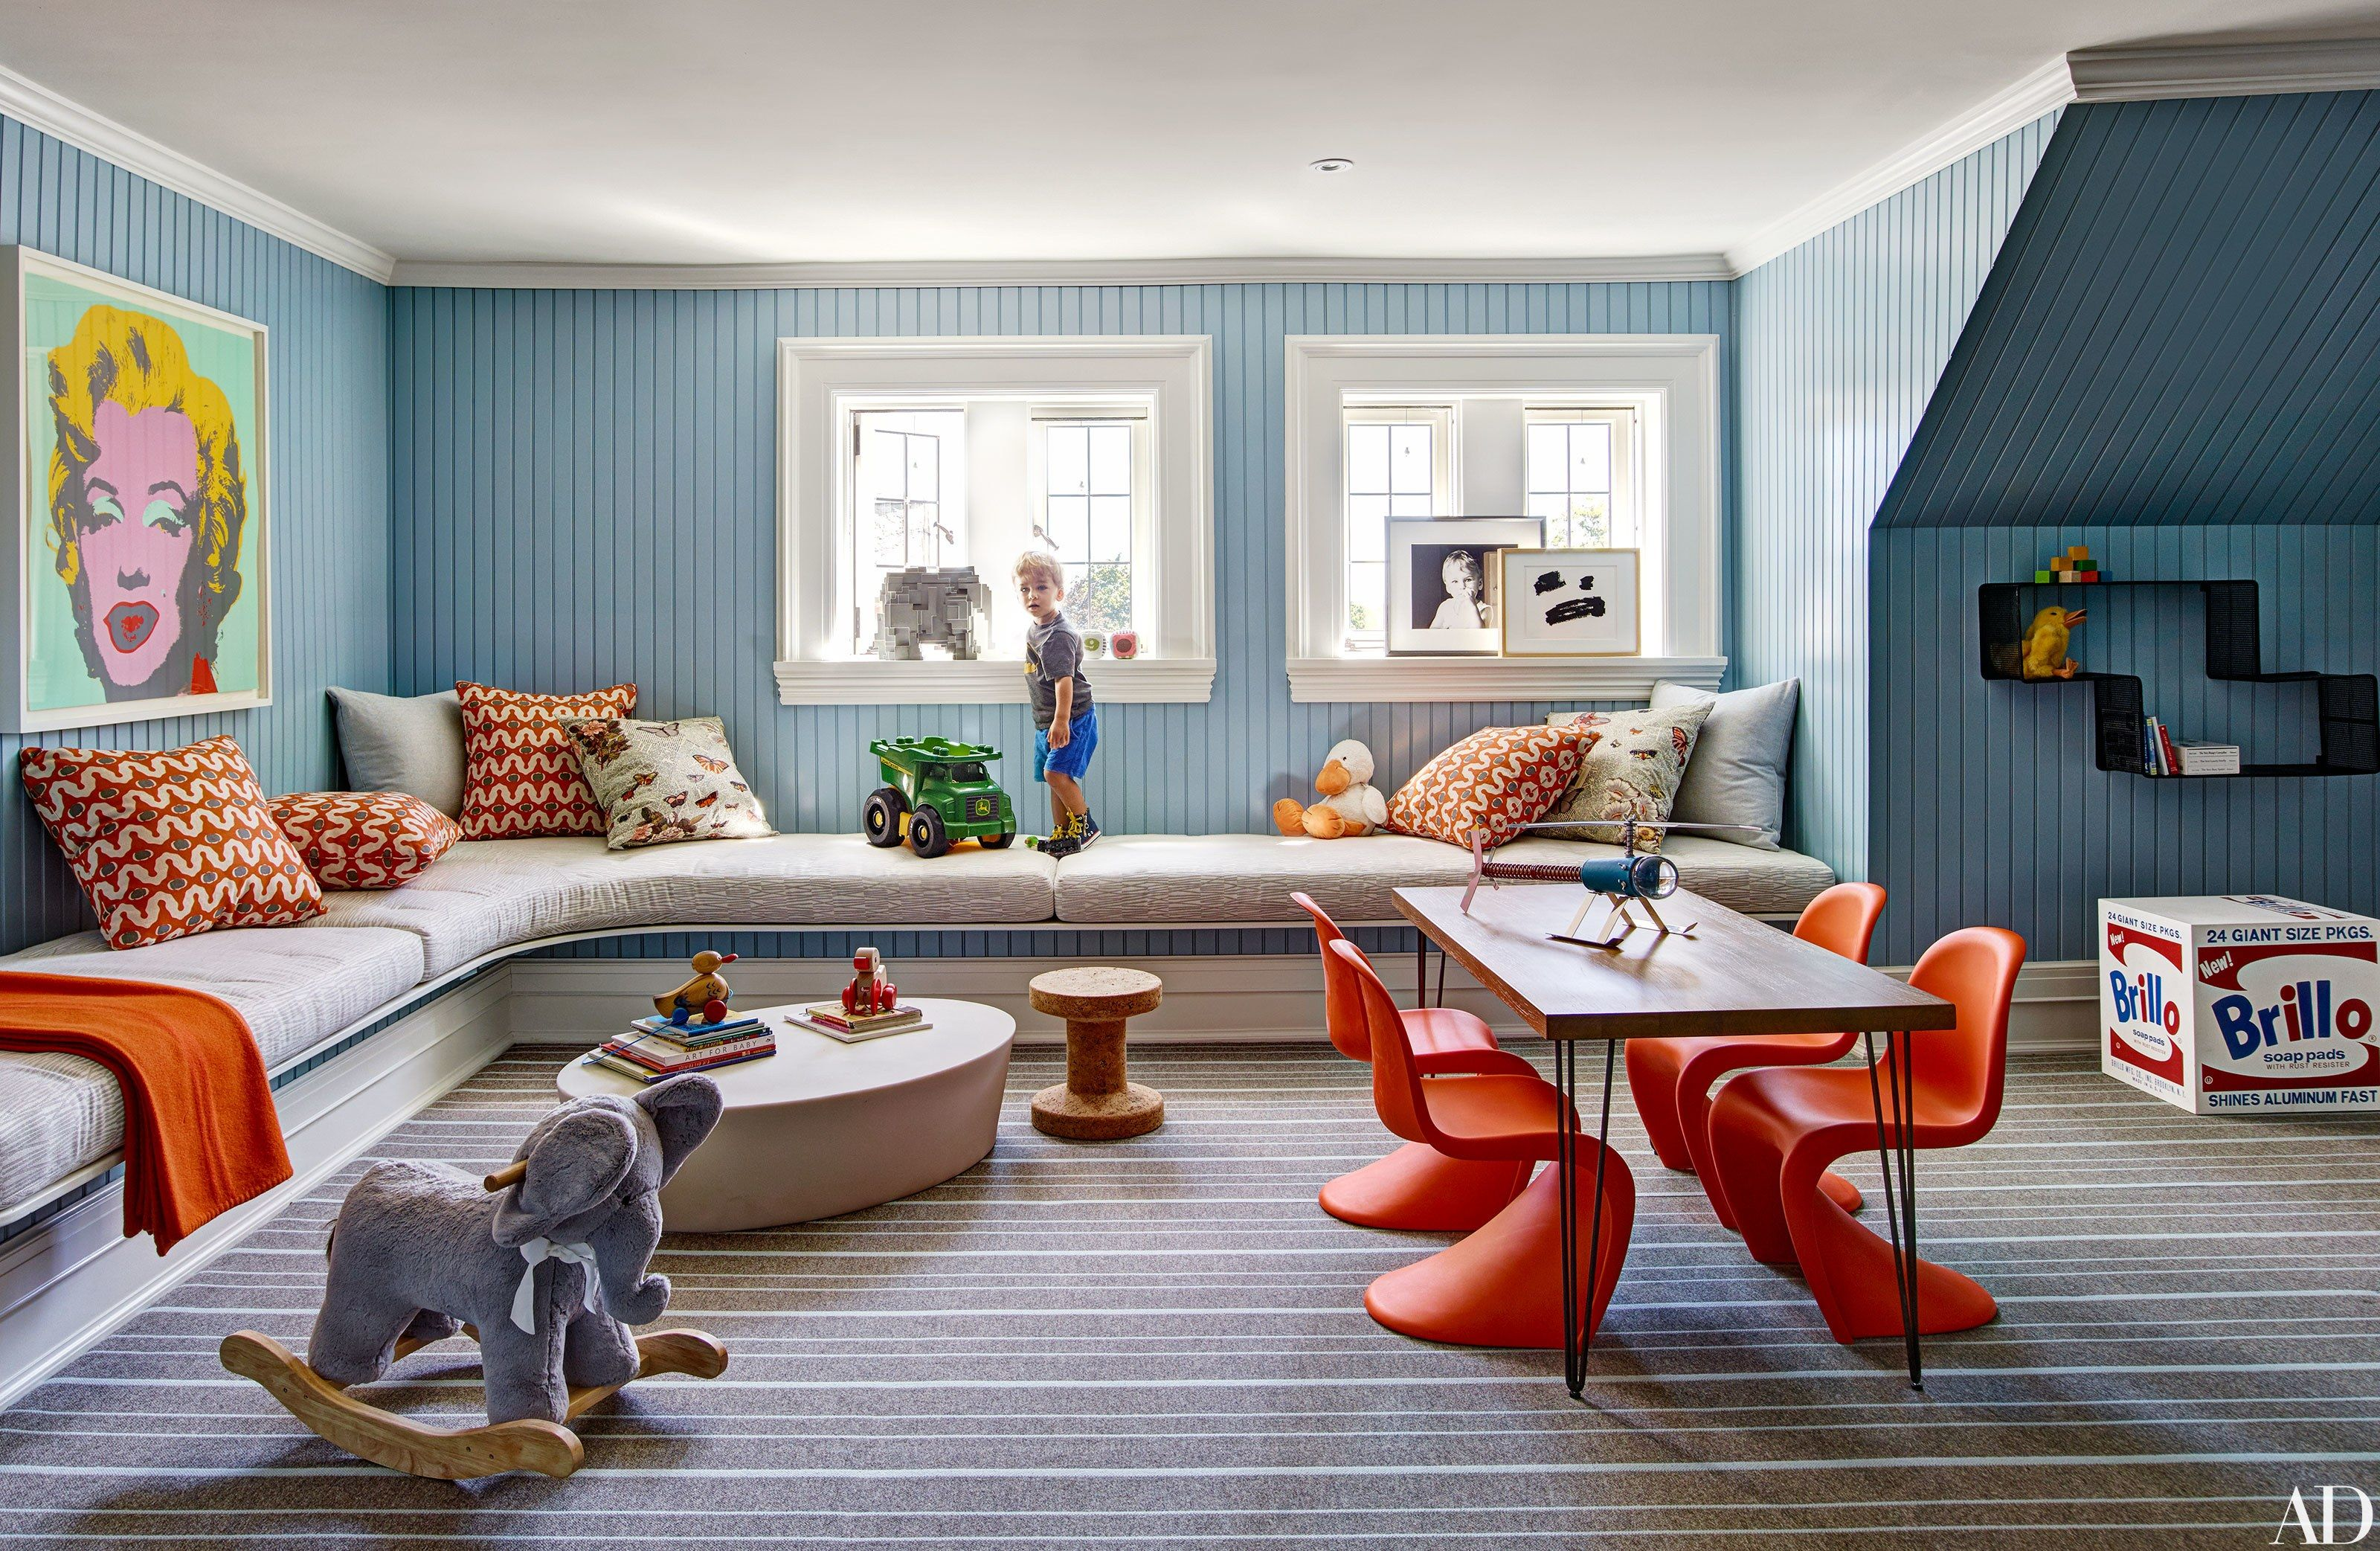 manhattan interiors drew aaron and hana soukupova s manhattan apartment A childrenu0027s playroom is enlivened by colorful accents and an Andy Warhol  portrait | archdigest.com